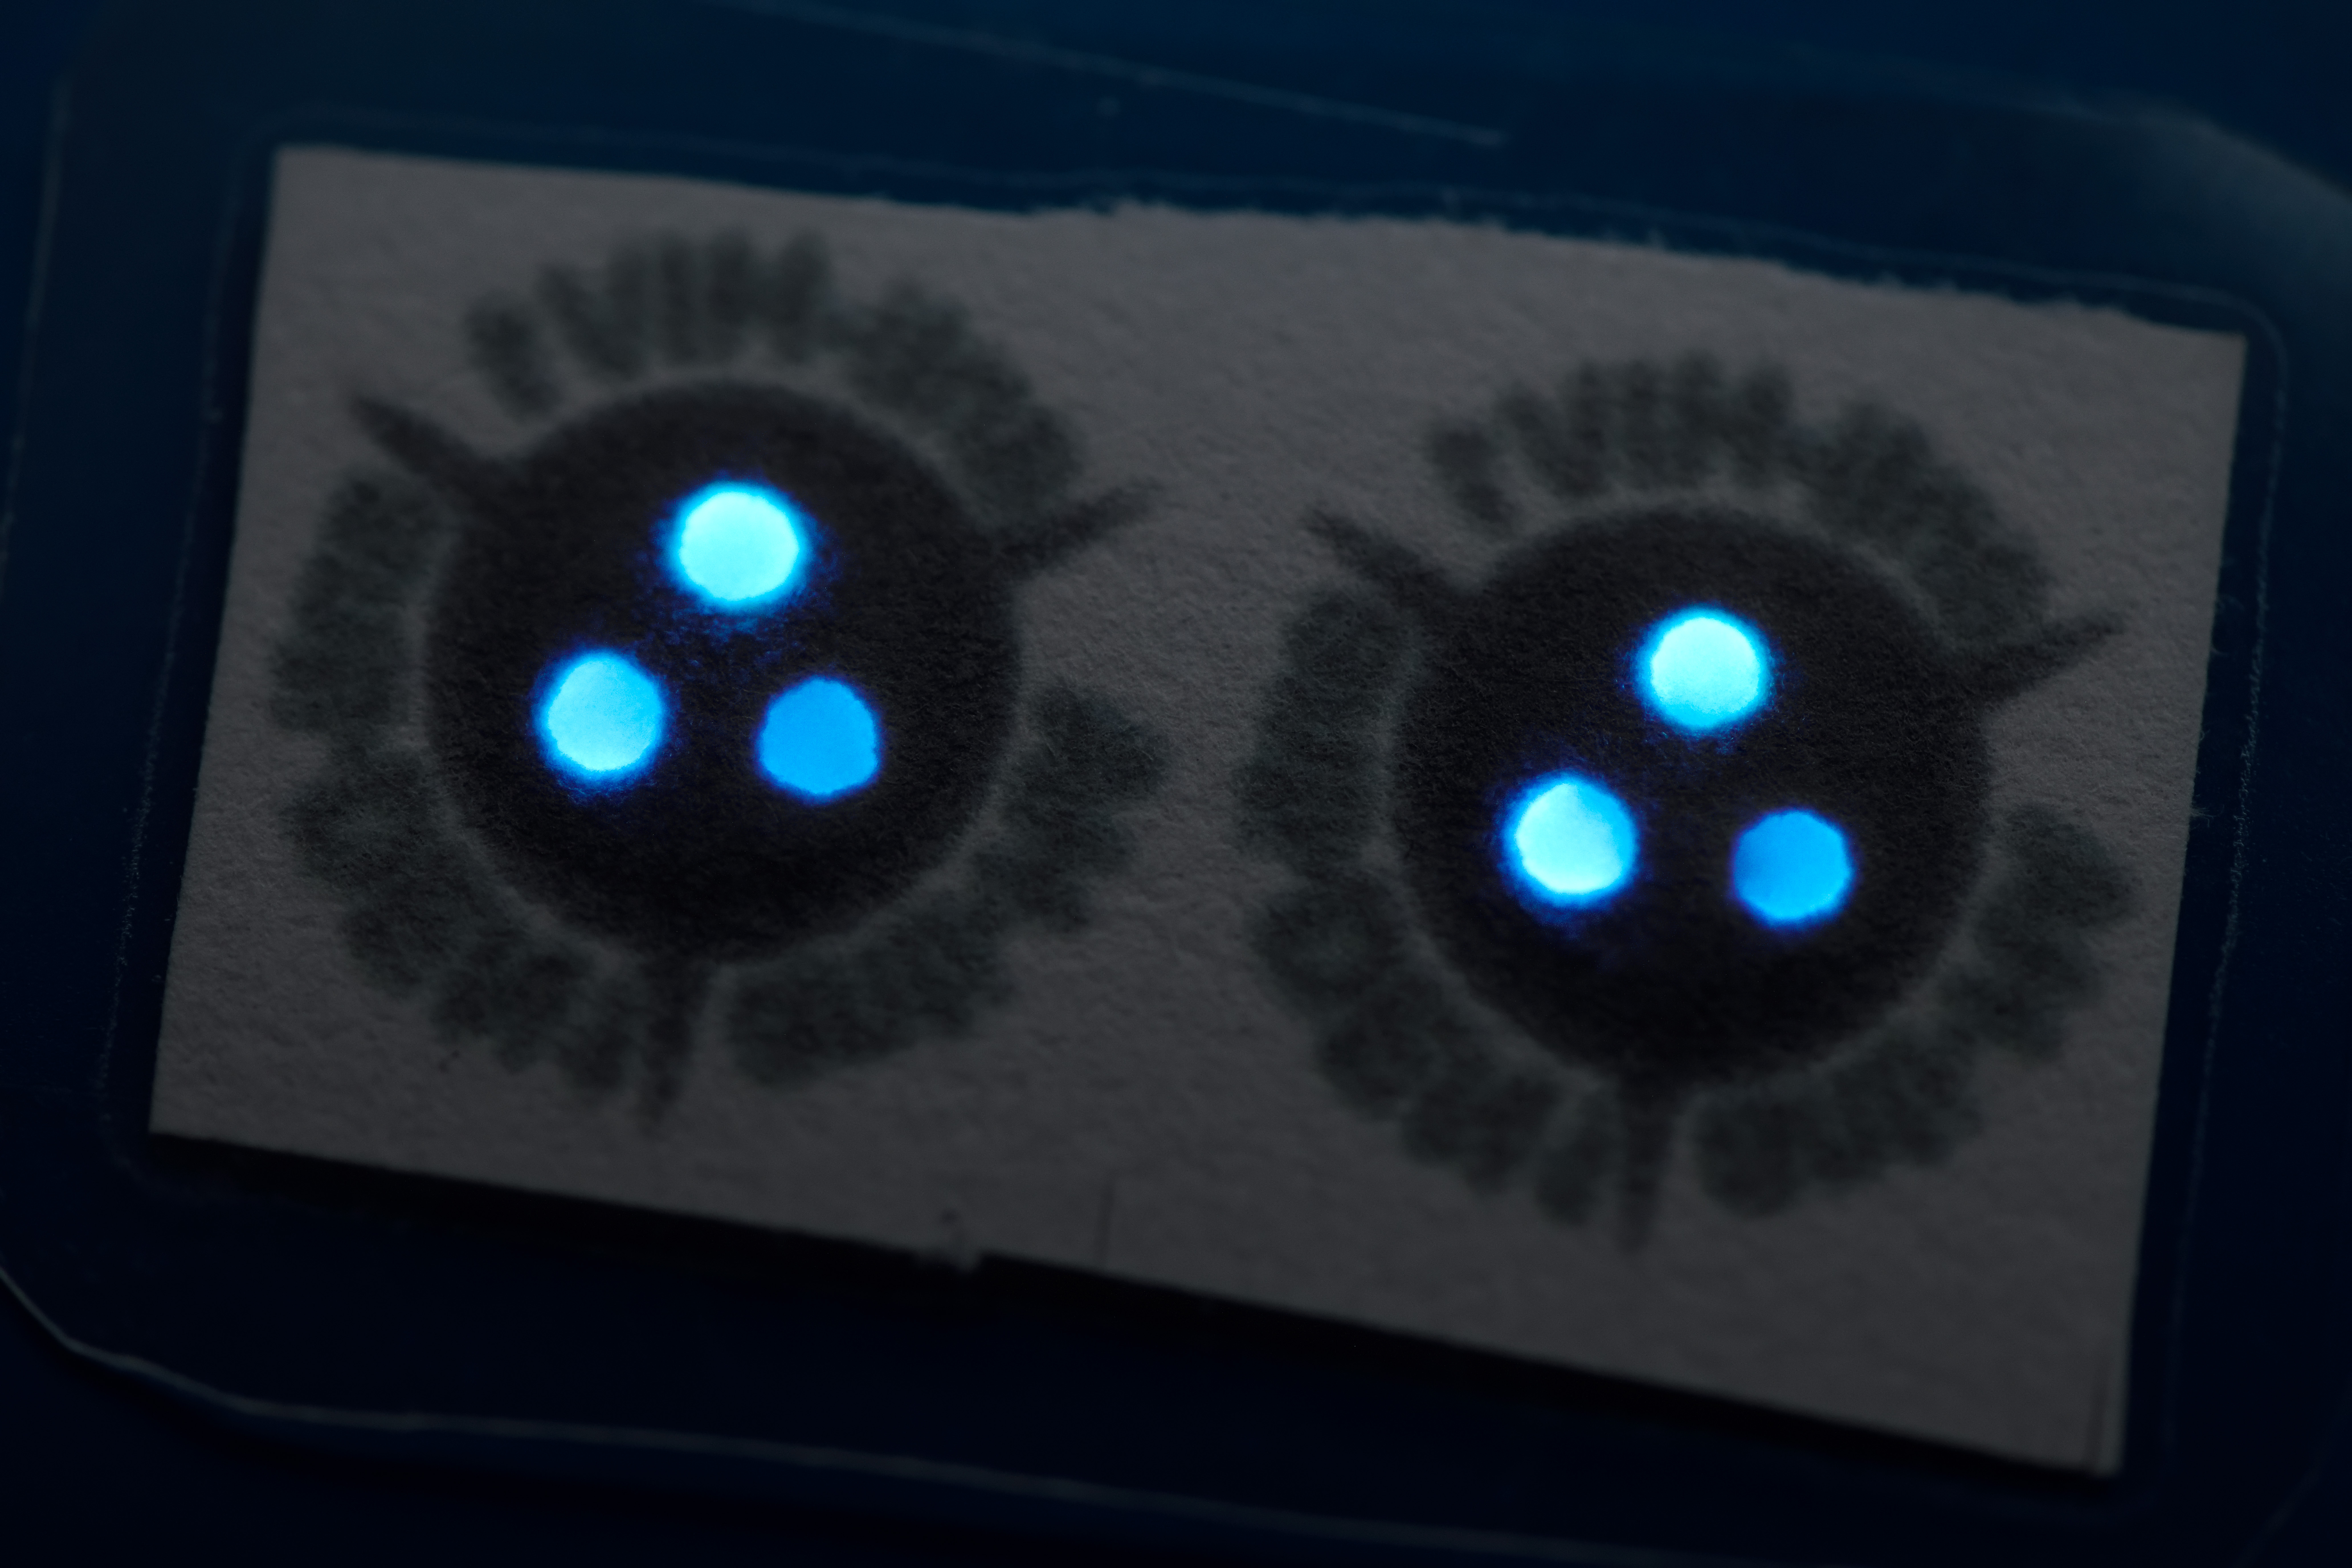 These antibody kits use luciferase, an enzyme used by fireflies to produce their glow, to emit blue light to indicate if an infection is being fought. Image credit - Bart van Overbeeke